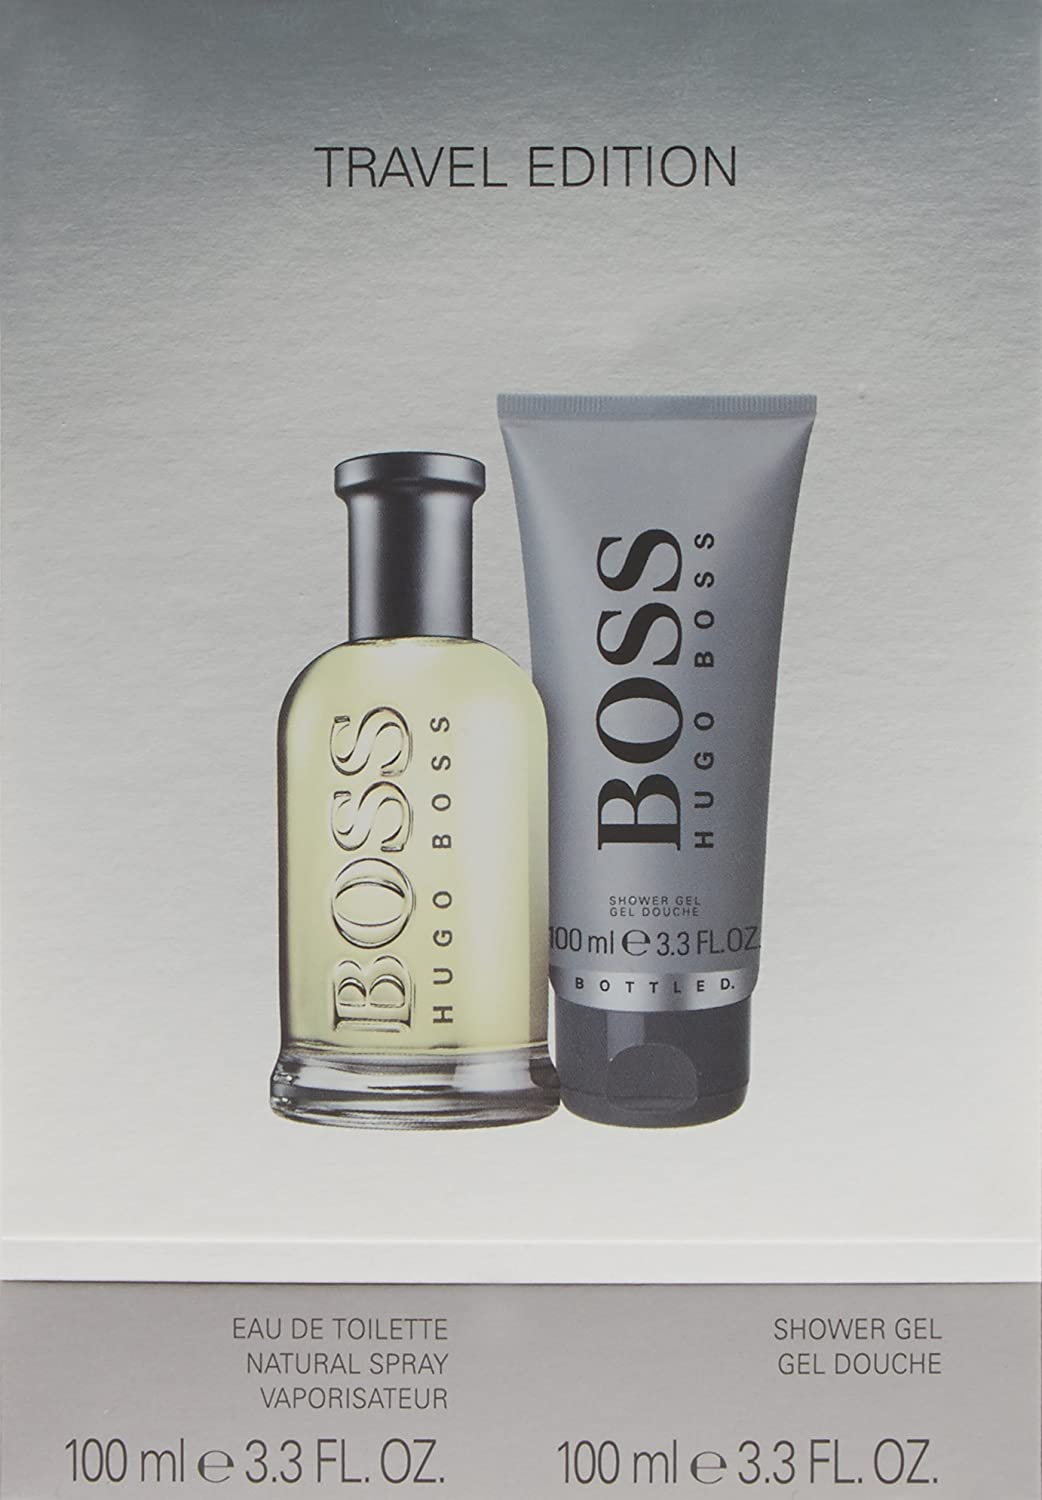 Boss Bottled Set for Men contains Eau de Toilette 100 ml and Showergel 100 ml Procter & Gamble 1B54026 49104